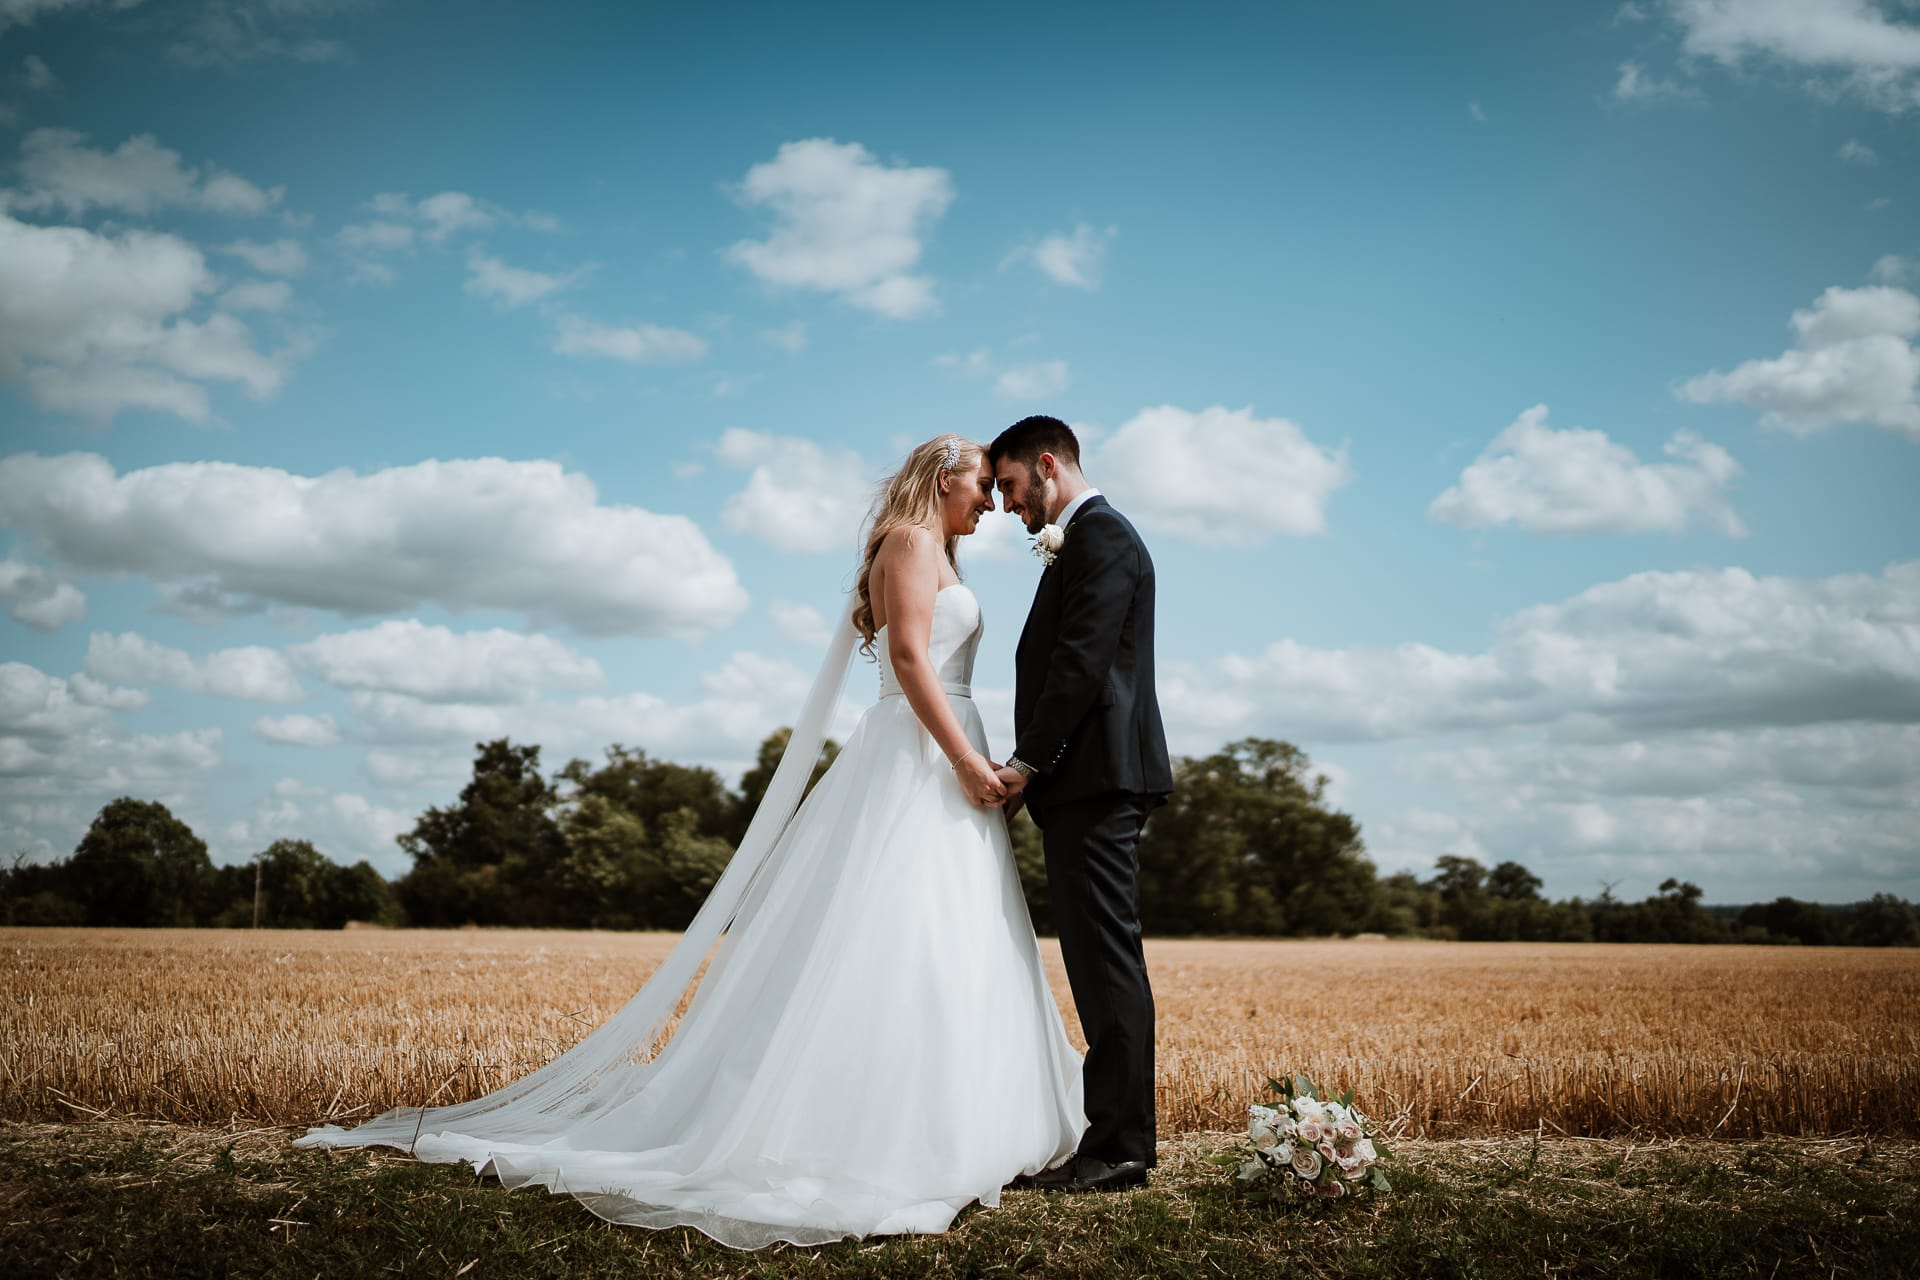 Bride and groom holding hands in field under blue sky